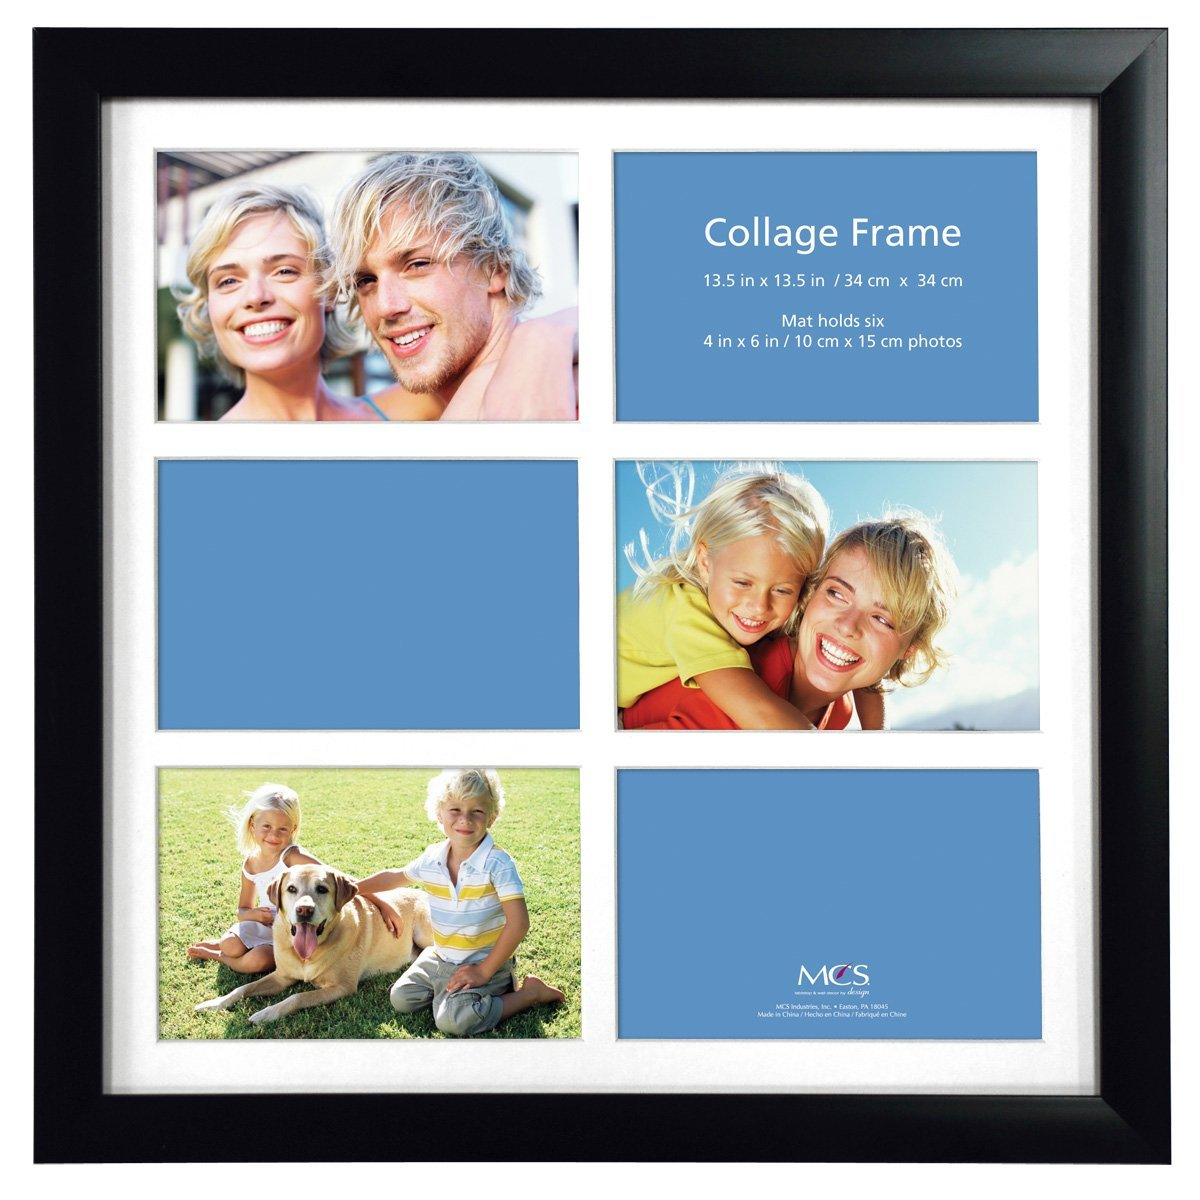 Amazon.com - MCS 13.25x13.25 Inch Collage Frame with 6 Openings ...